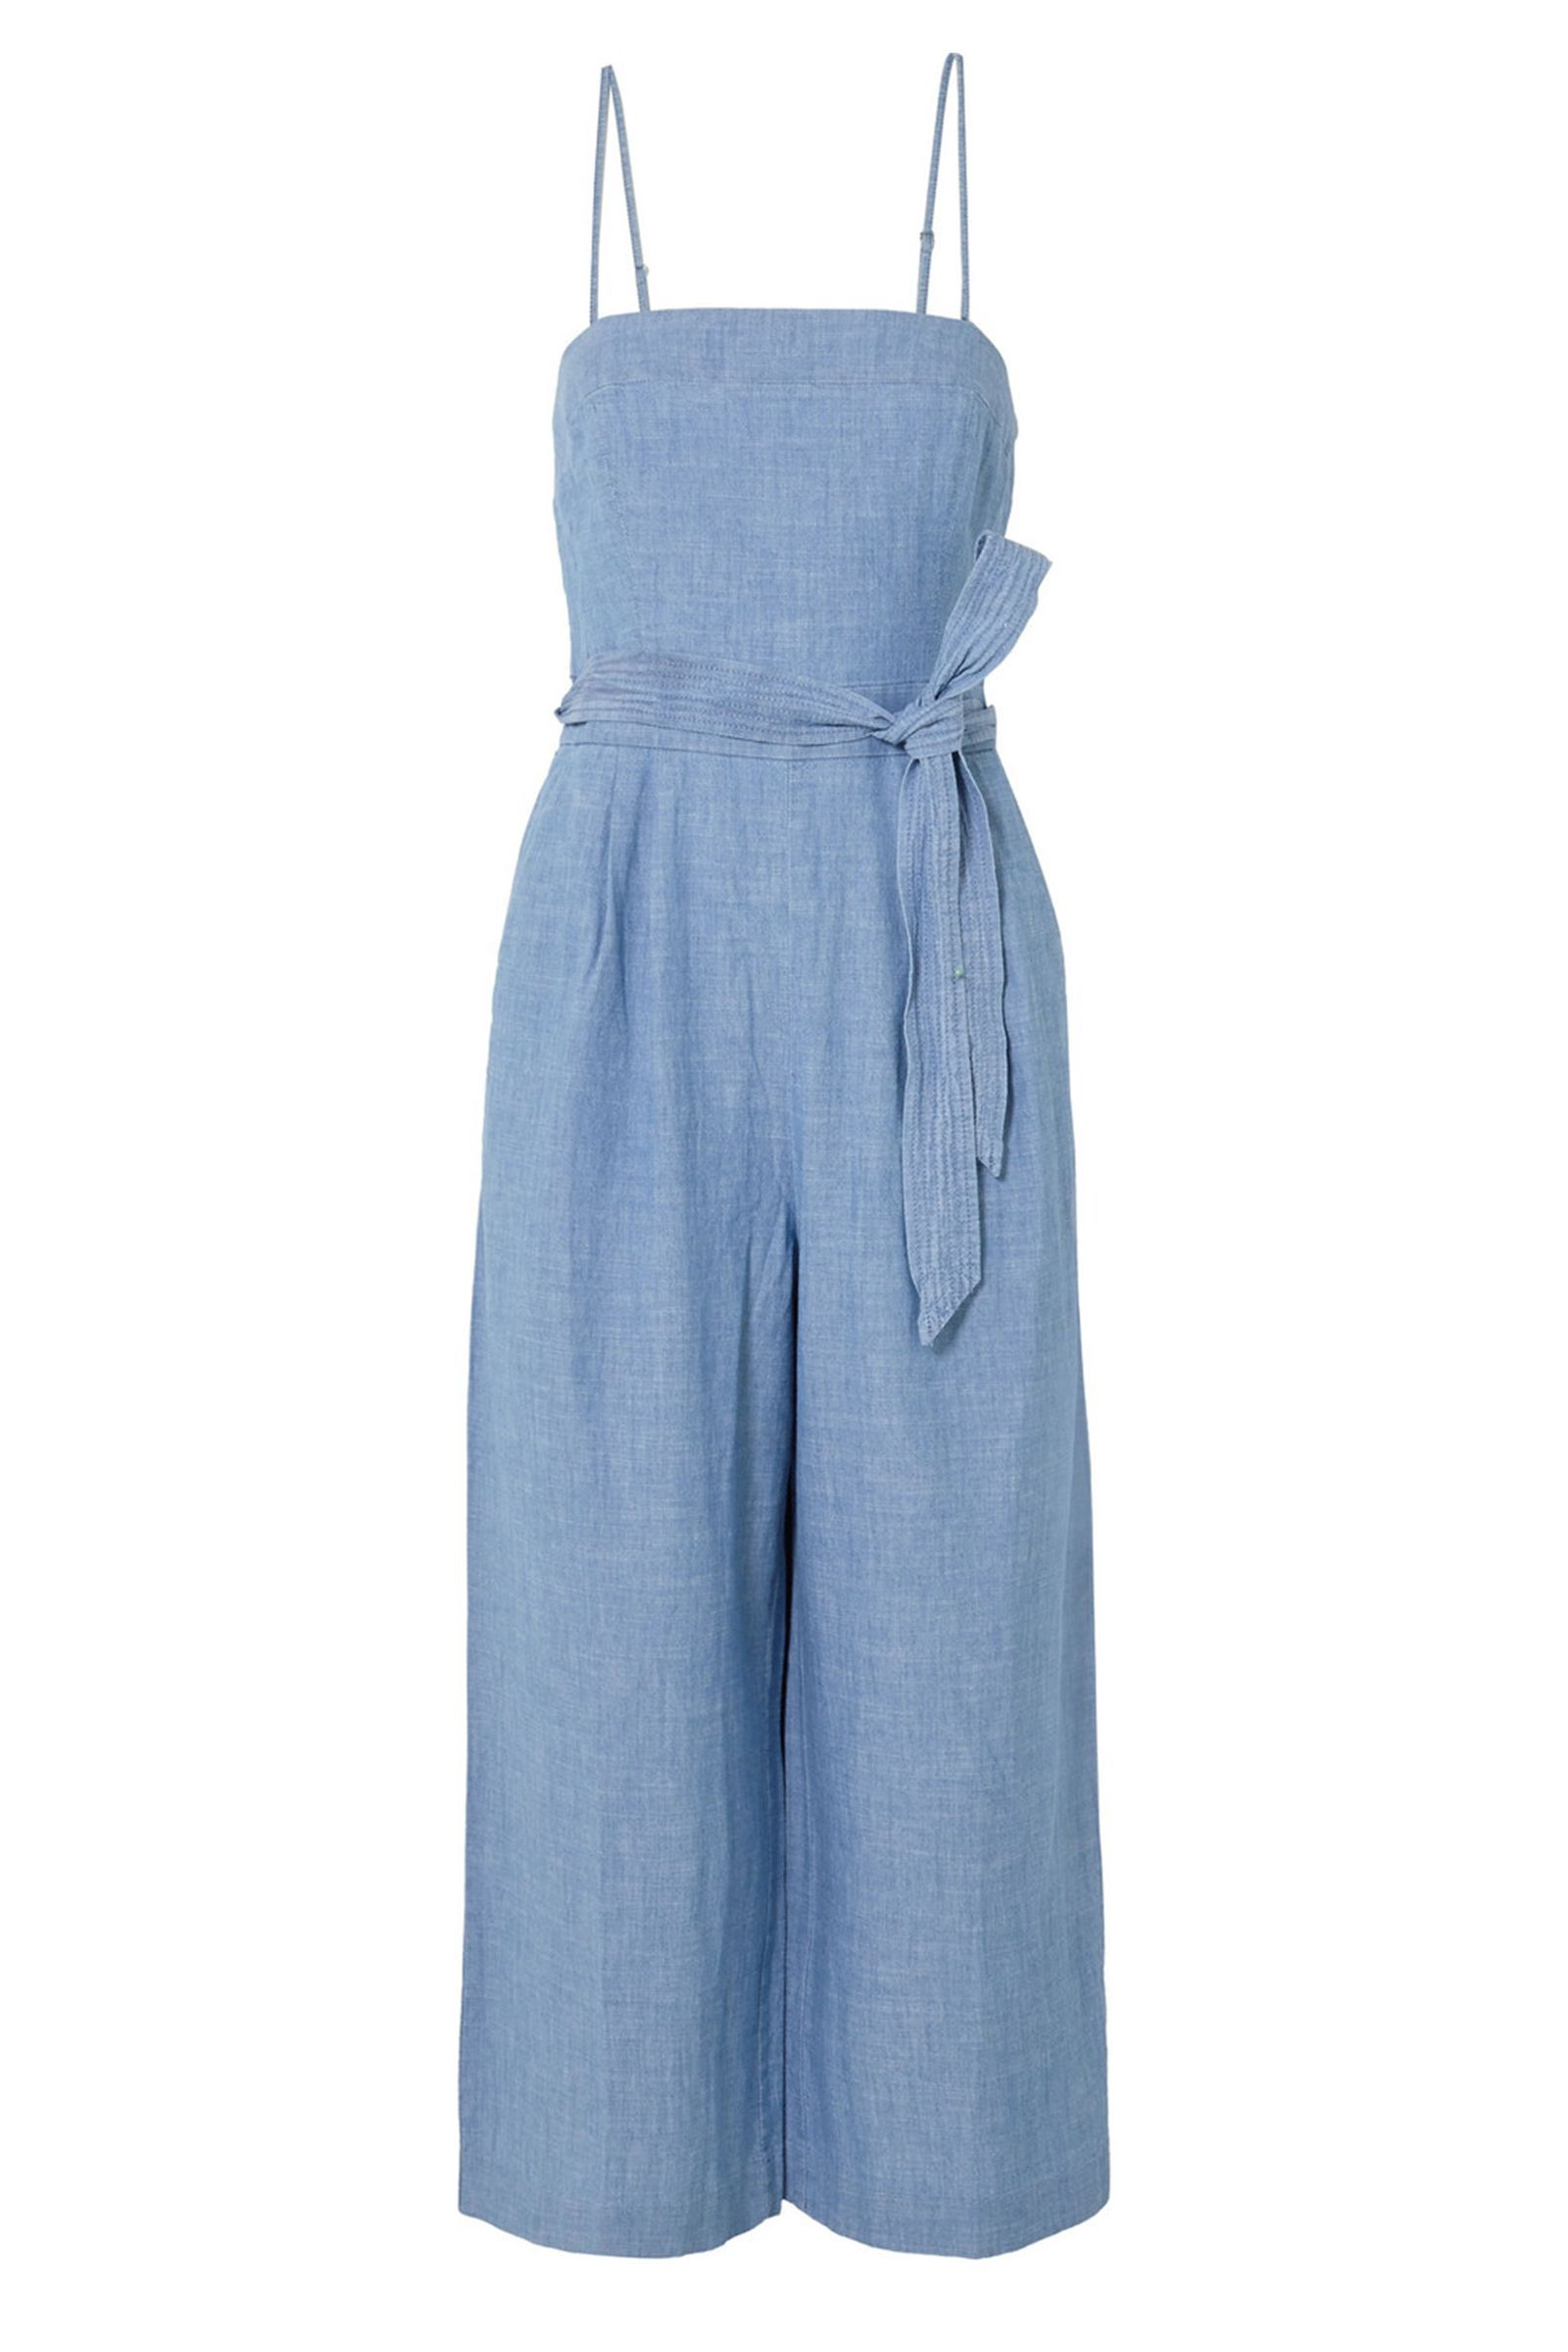 94ac1cba4e5 Gorgeous chambray blue jumpsuit for women - J.Crew Marseille Cotton  Chambray Jumpsuit (Regular and Petite) at Nordstrom